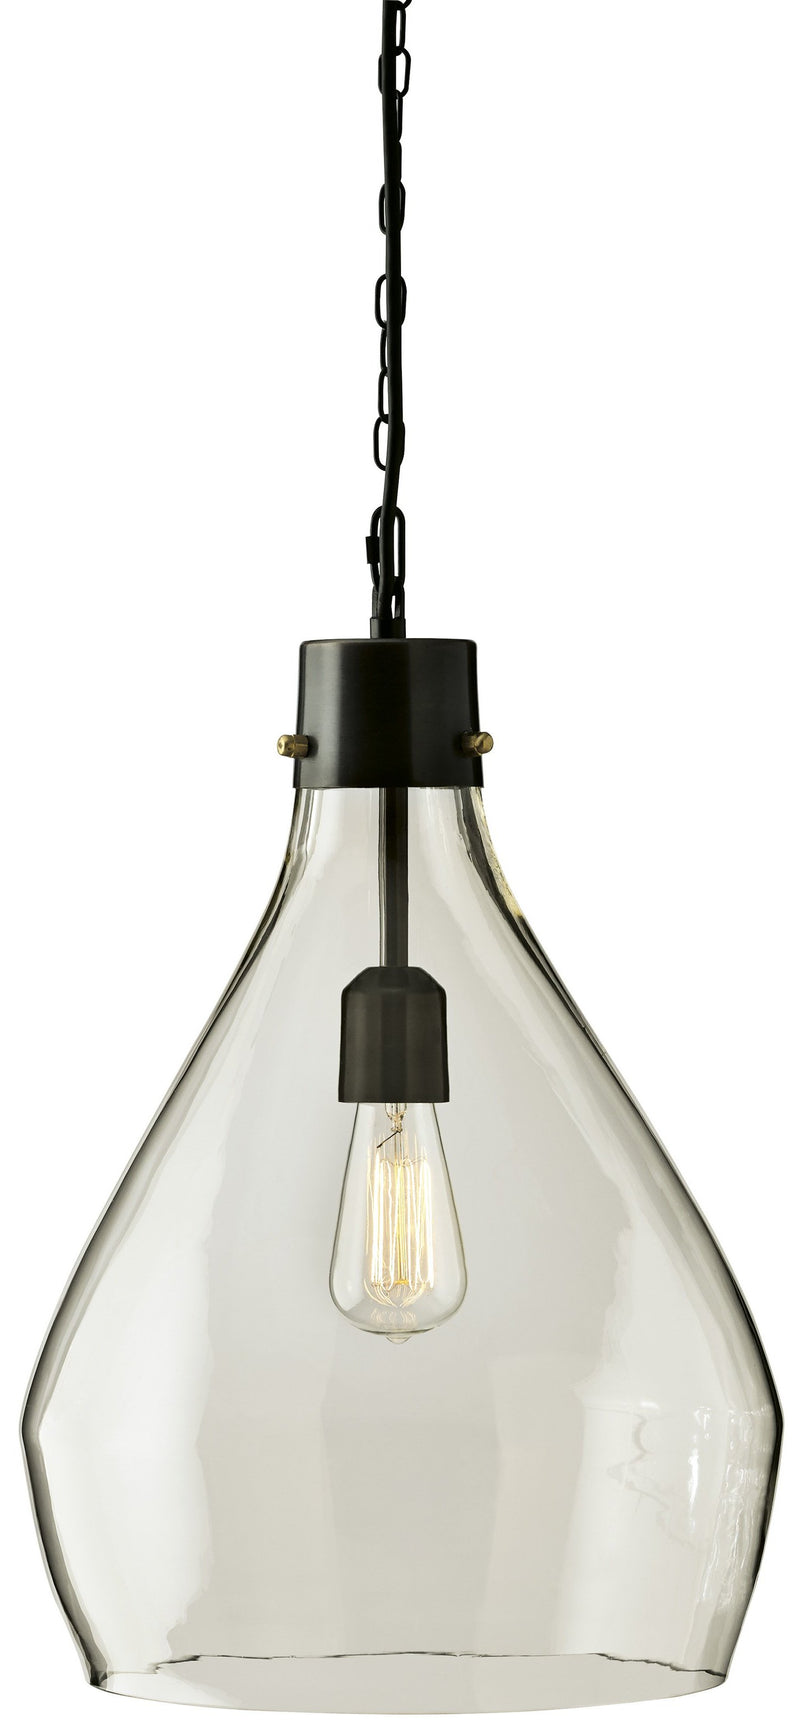 CORNERSTONE HOME INTERIORS - AVALBANE PENDANT LIGHT